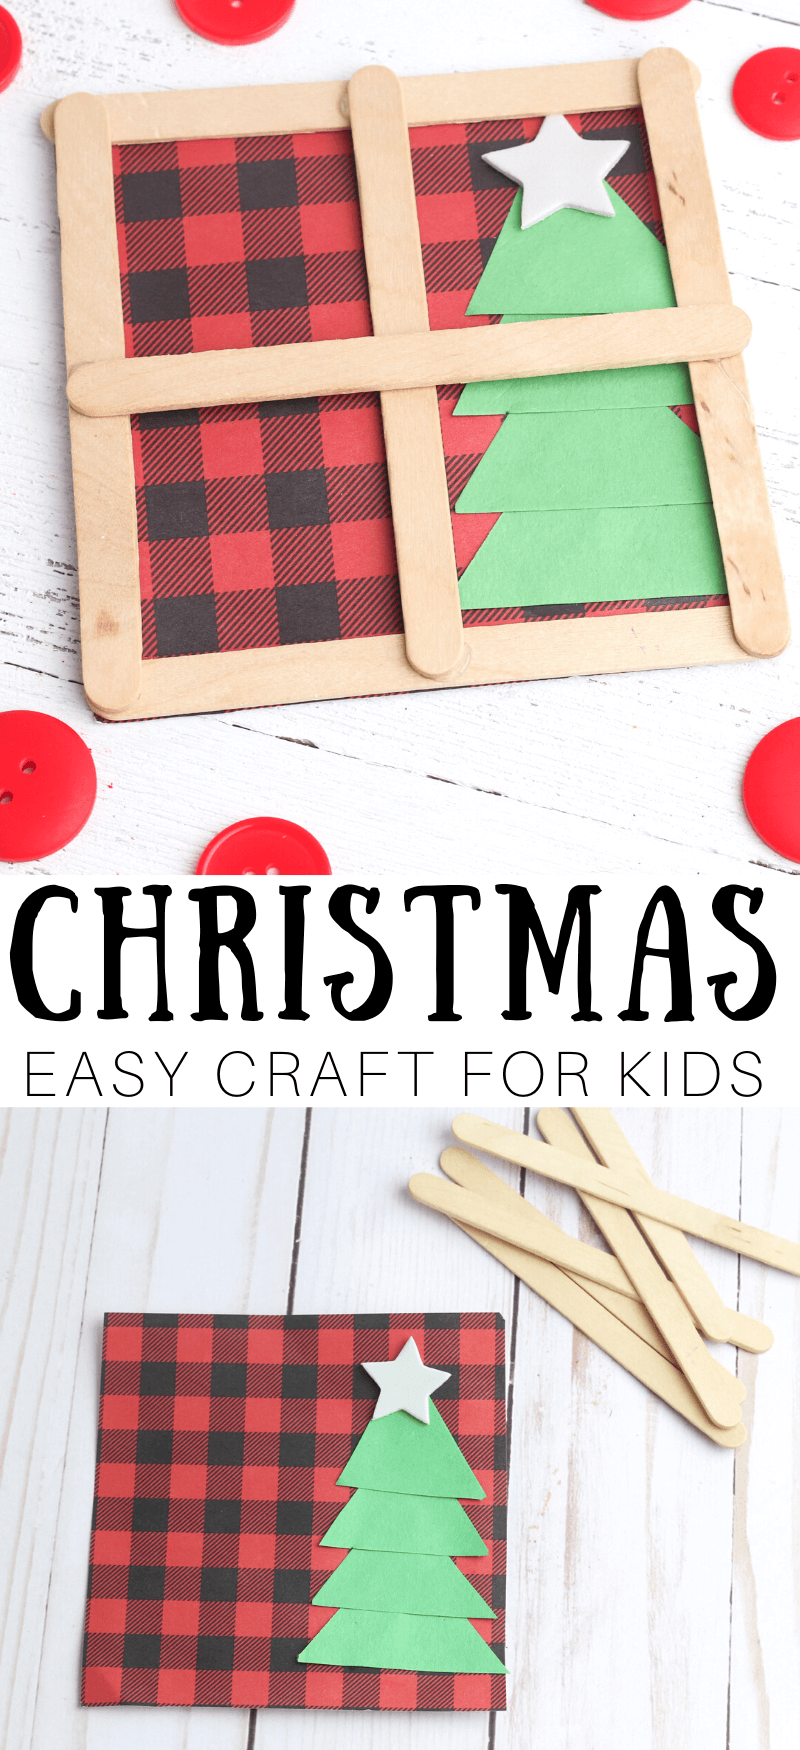 Popsicle Stick Craft Window For Christmas #popciclesticks